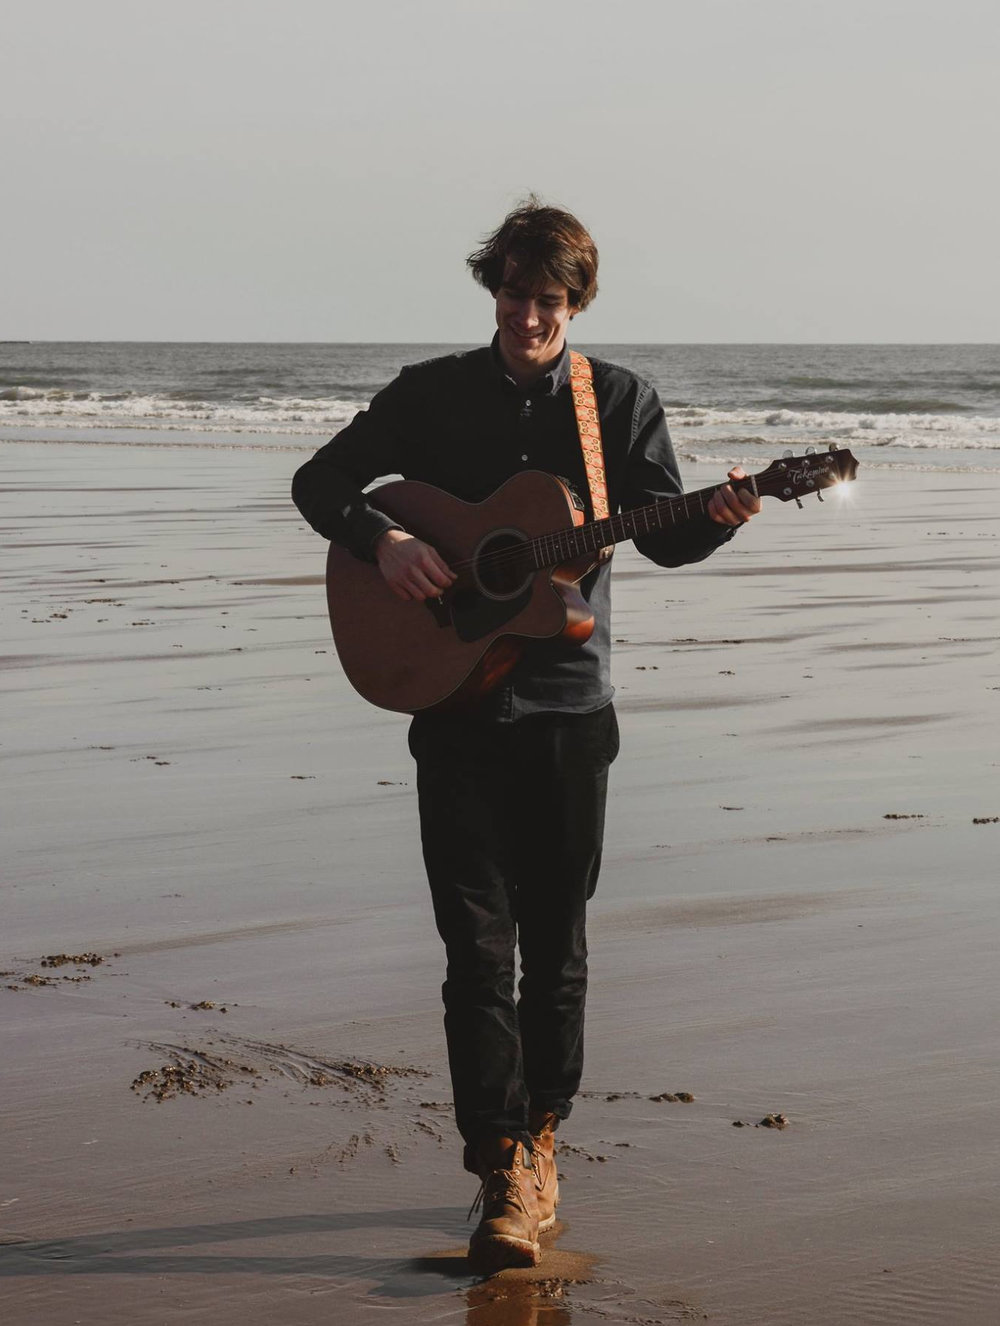 Jakub Pešek - Jakub is a singer-songwriter based in Dundee. He is currently working on his debut EP which will be released in February 2019. Jakub studies popular music at Perth UHI. He is from the Czech Republic and he moved to Scotland three years ago.